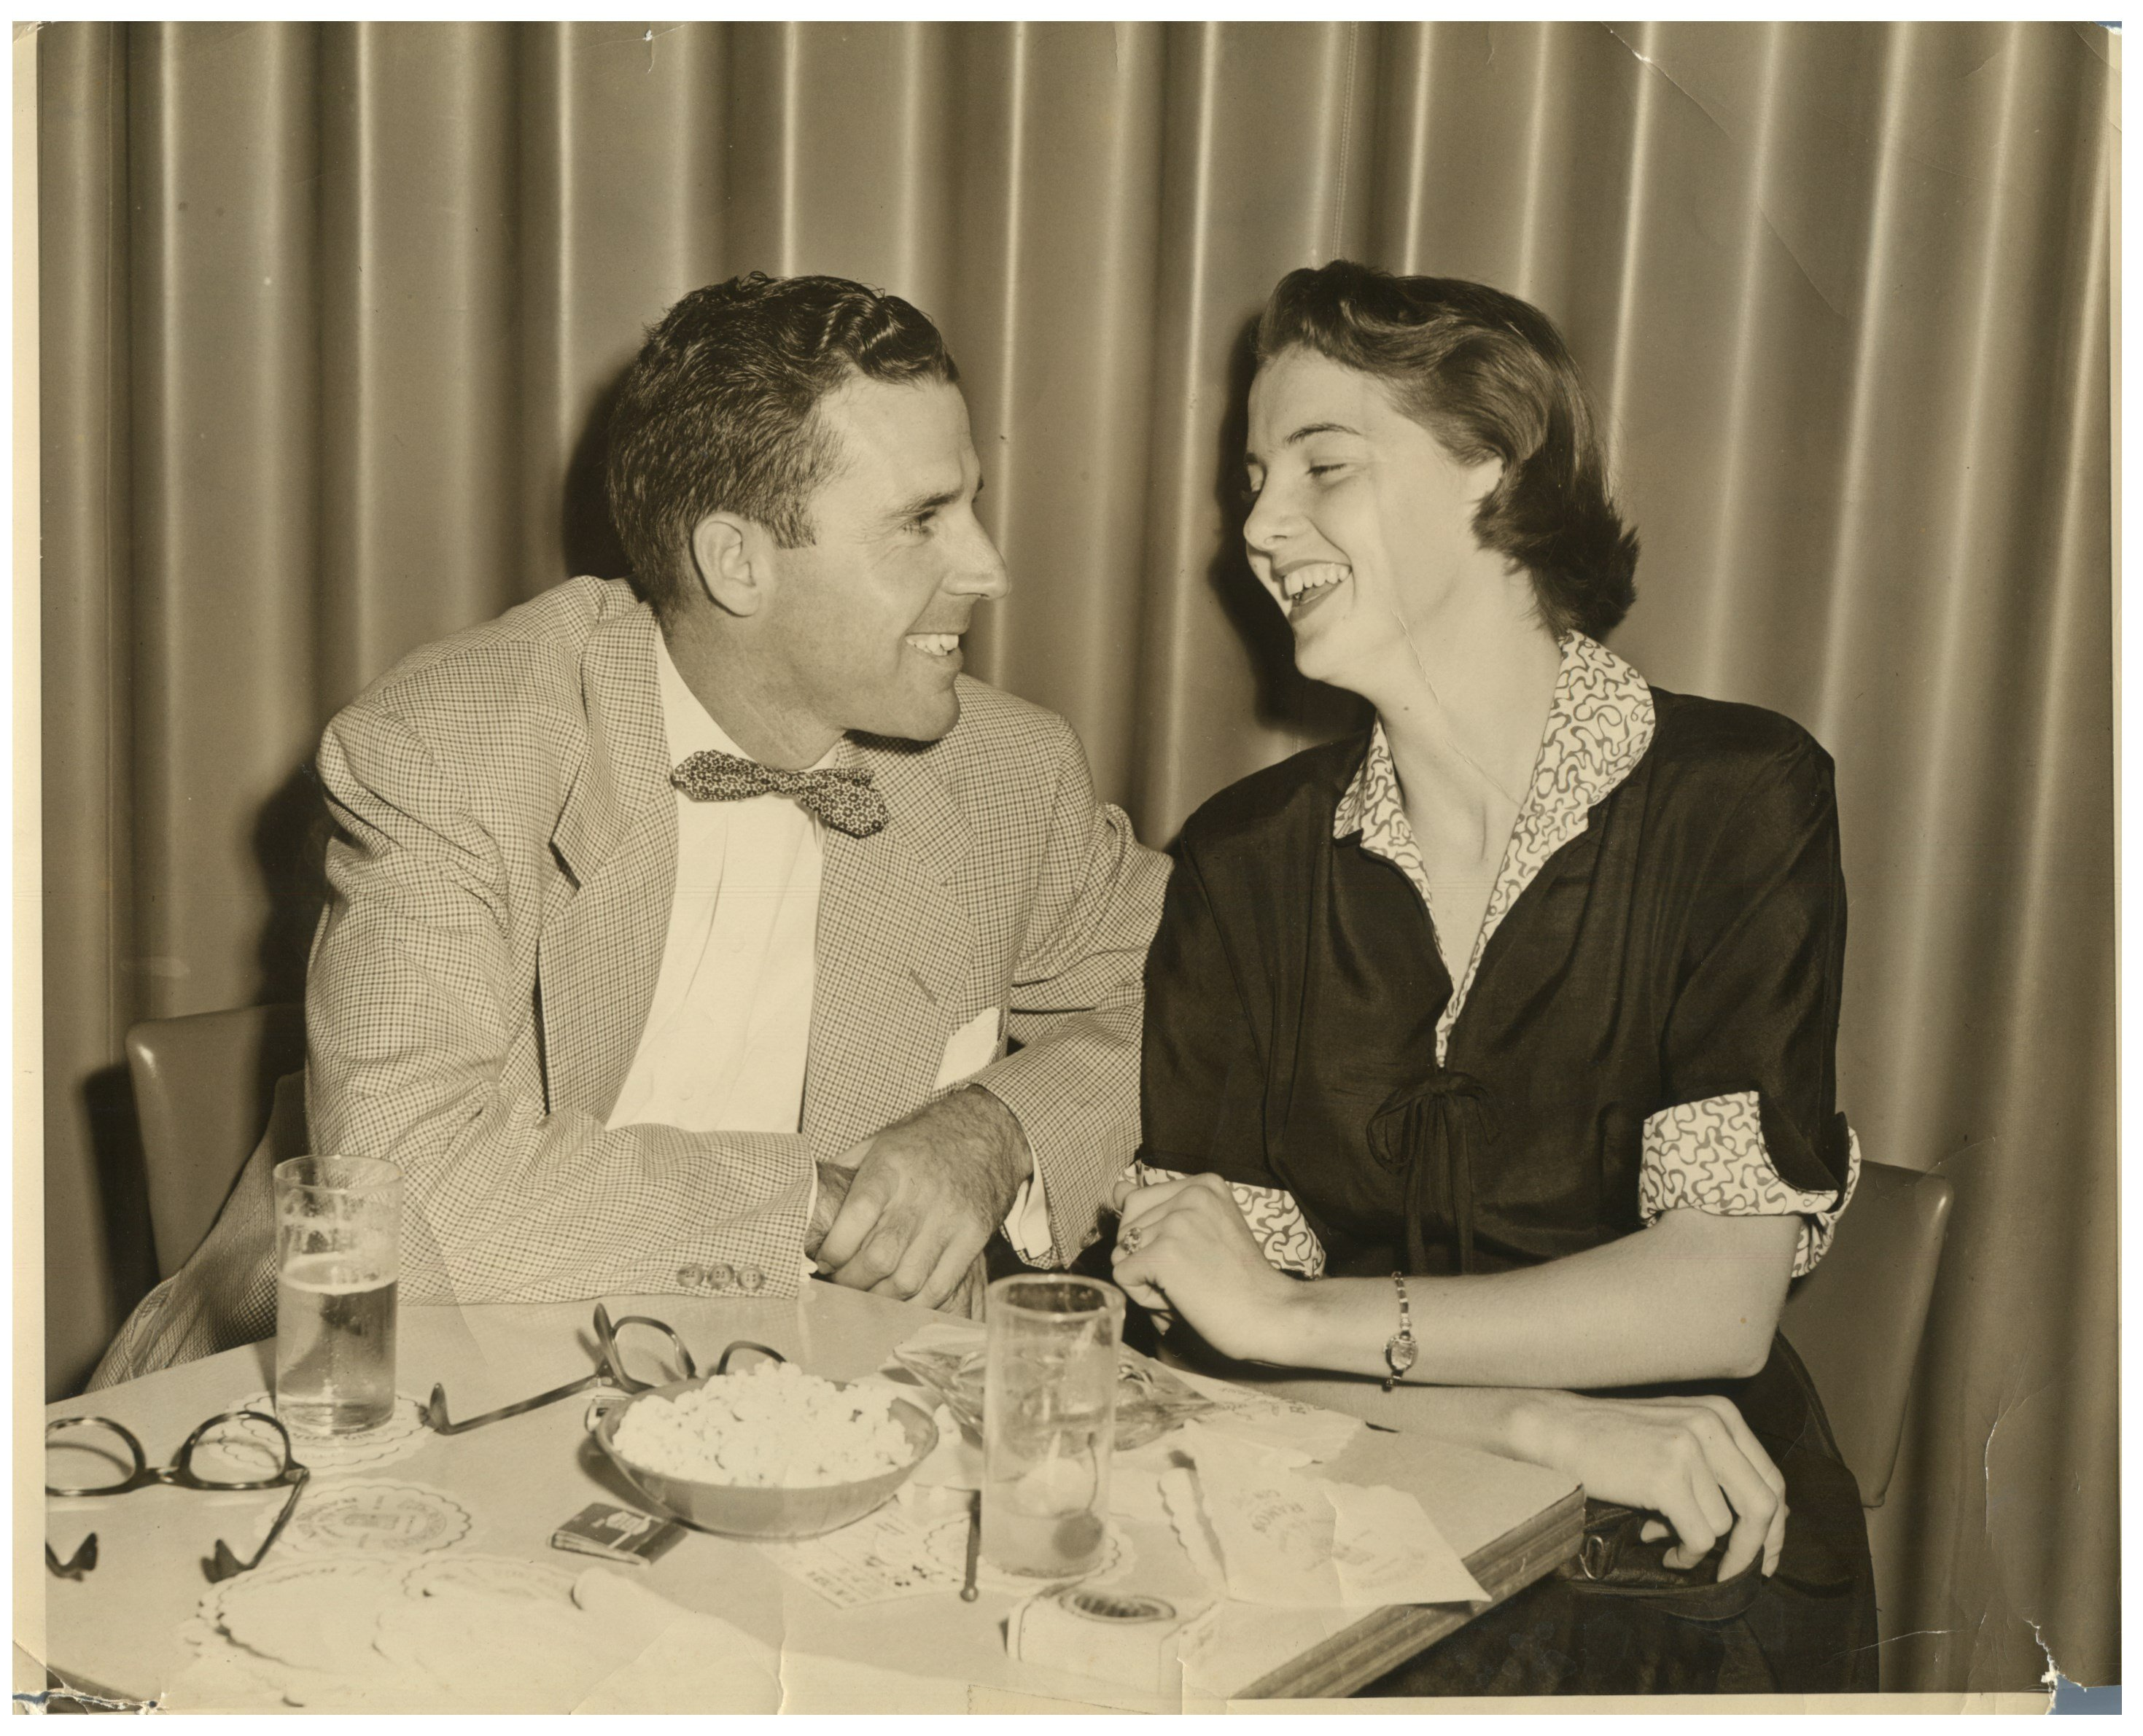 Shown are Darlene Flatt (right) and her husband Earl Flatt, who was the State Farm Insurance district manager.  In the 1950s, they moved to Lafayette from Tennessee.